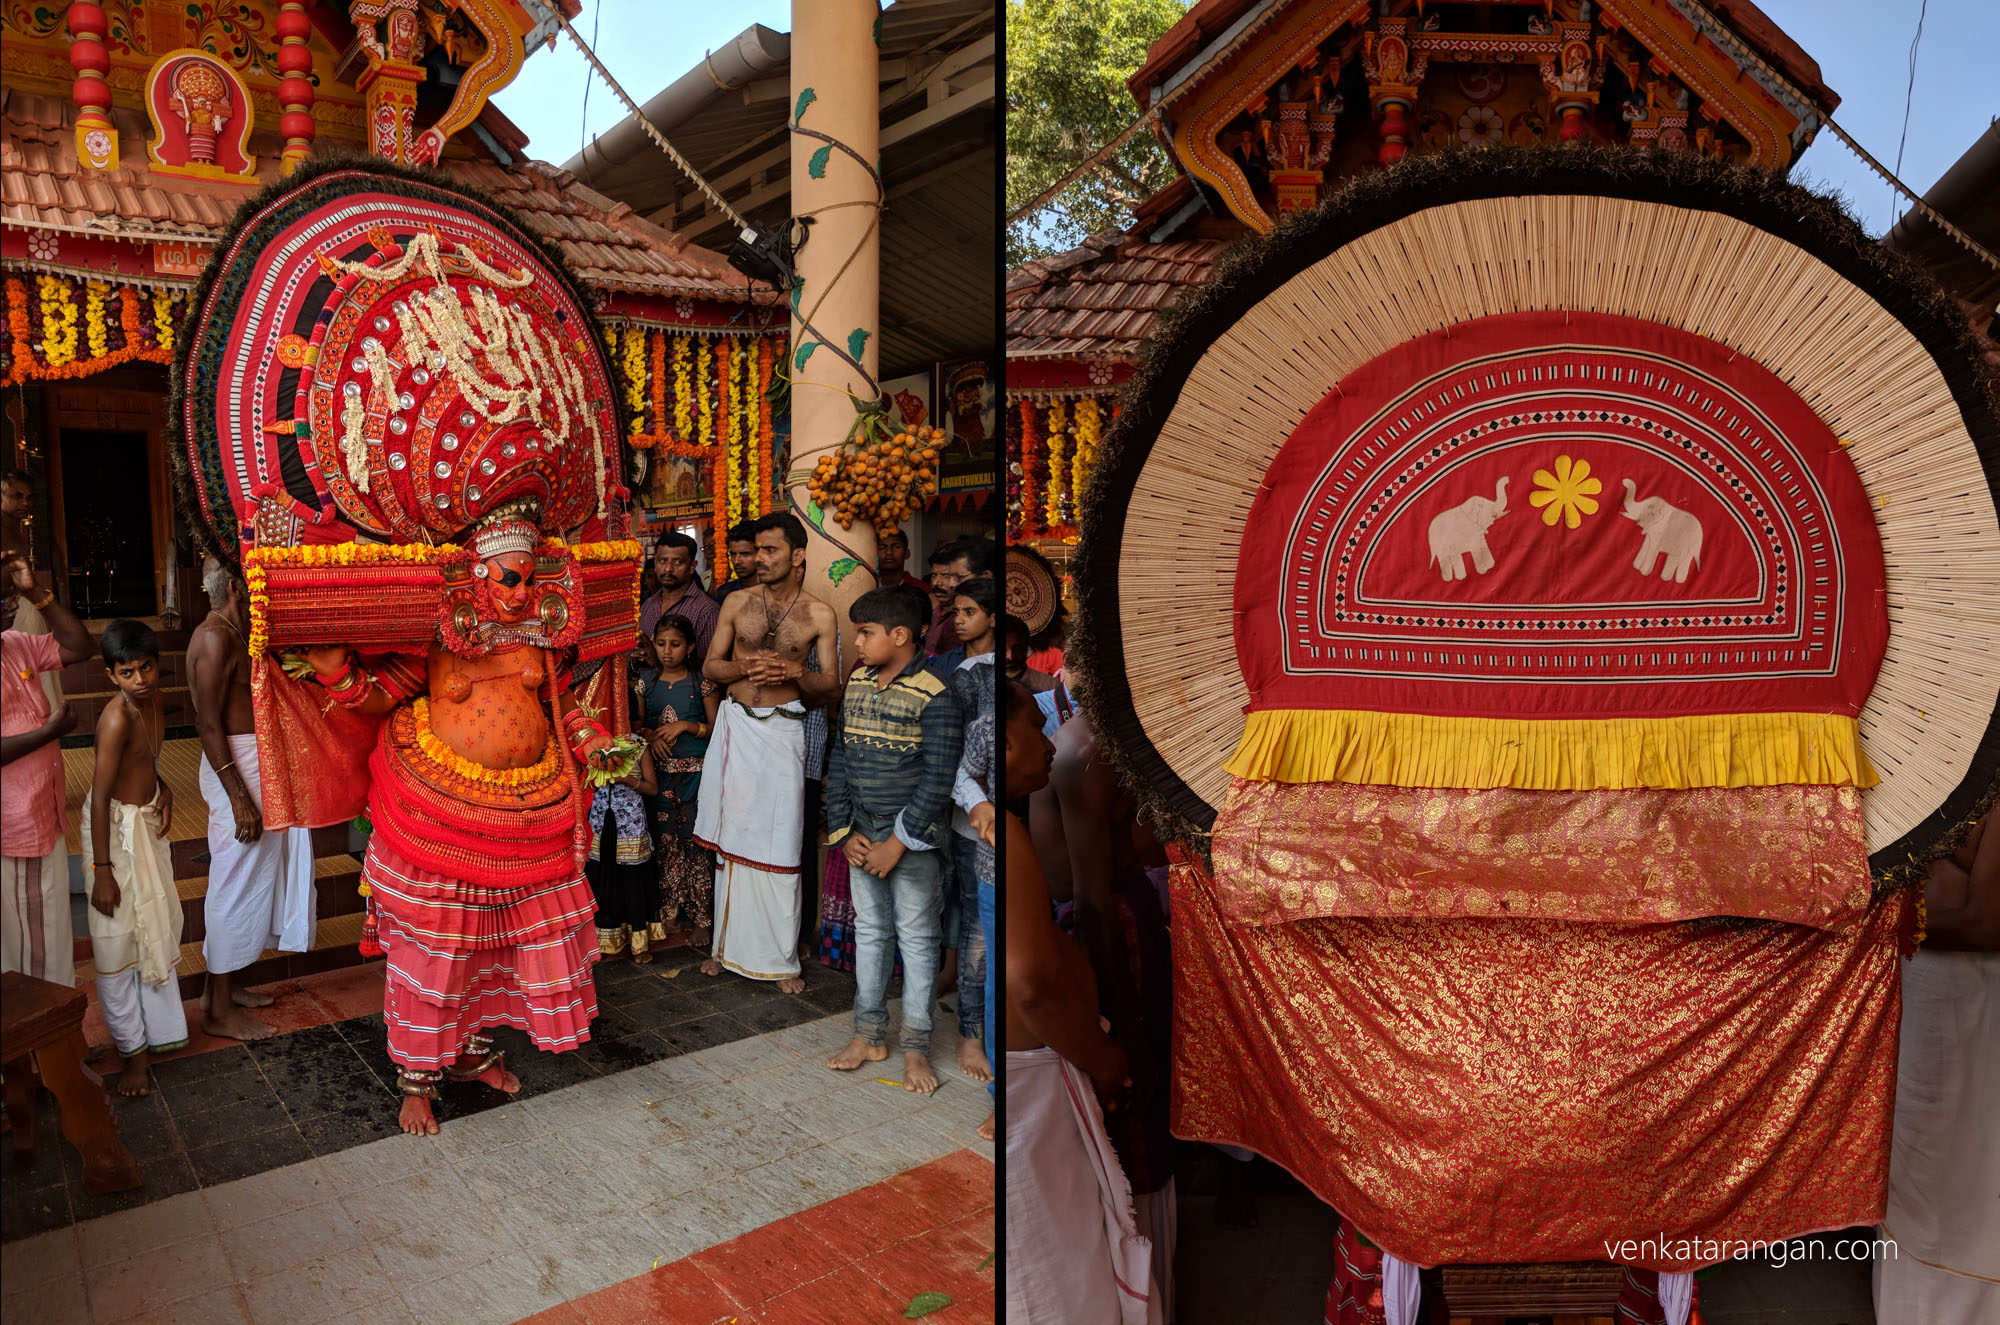 Theyyam performer with his breathtaking costume and large headdress